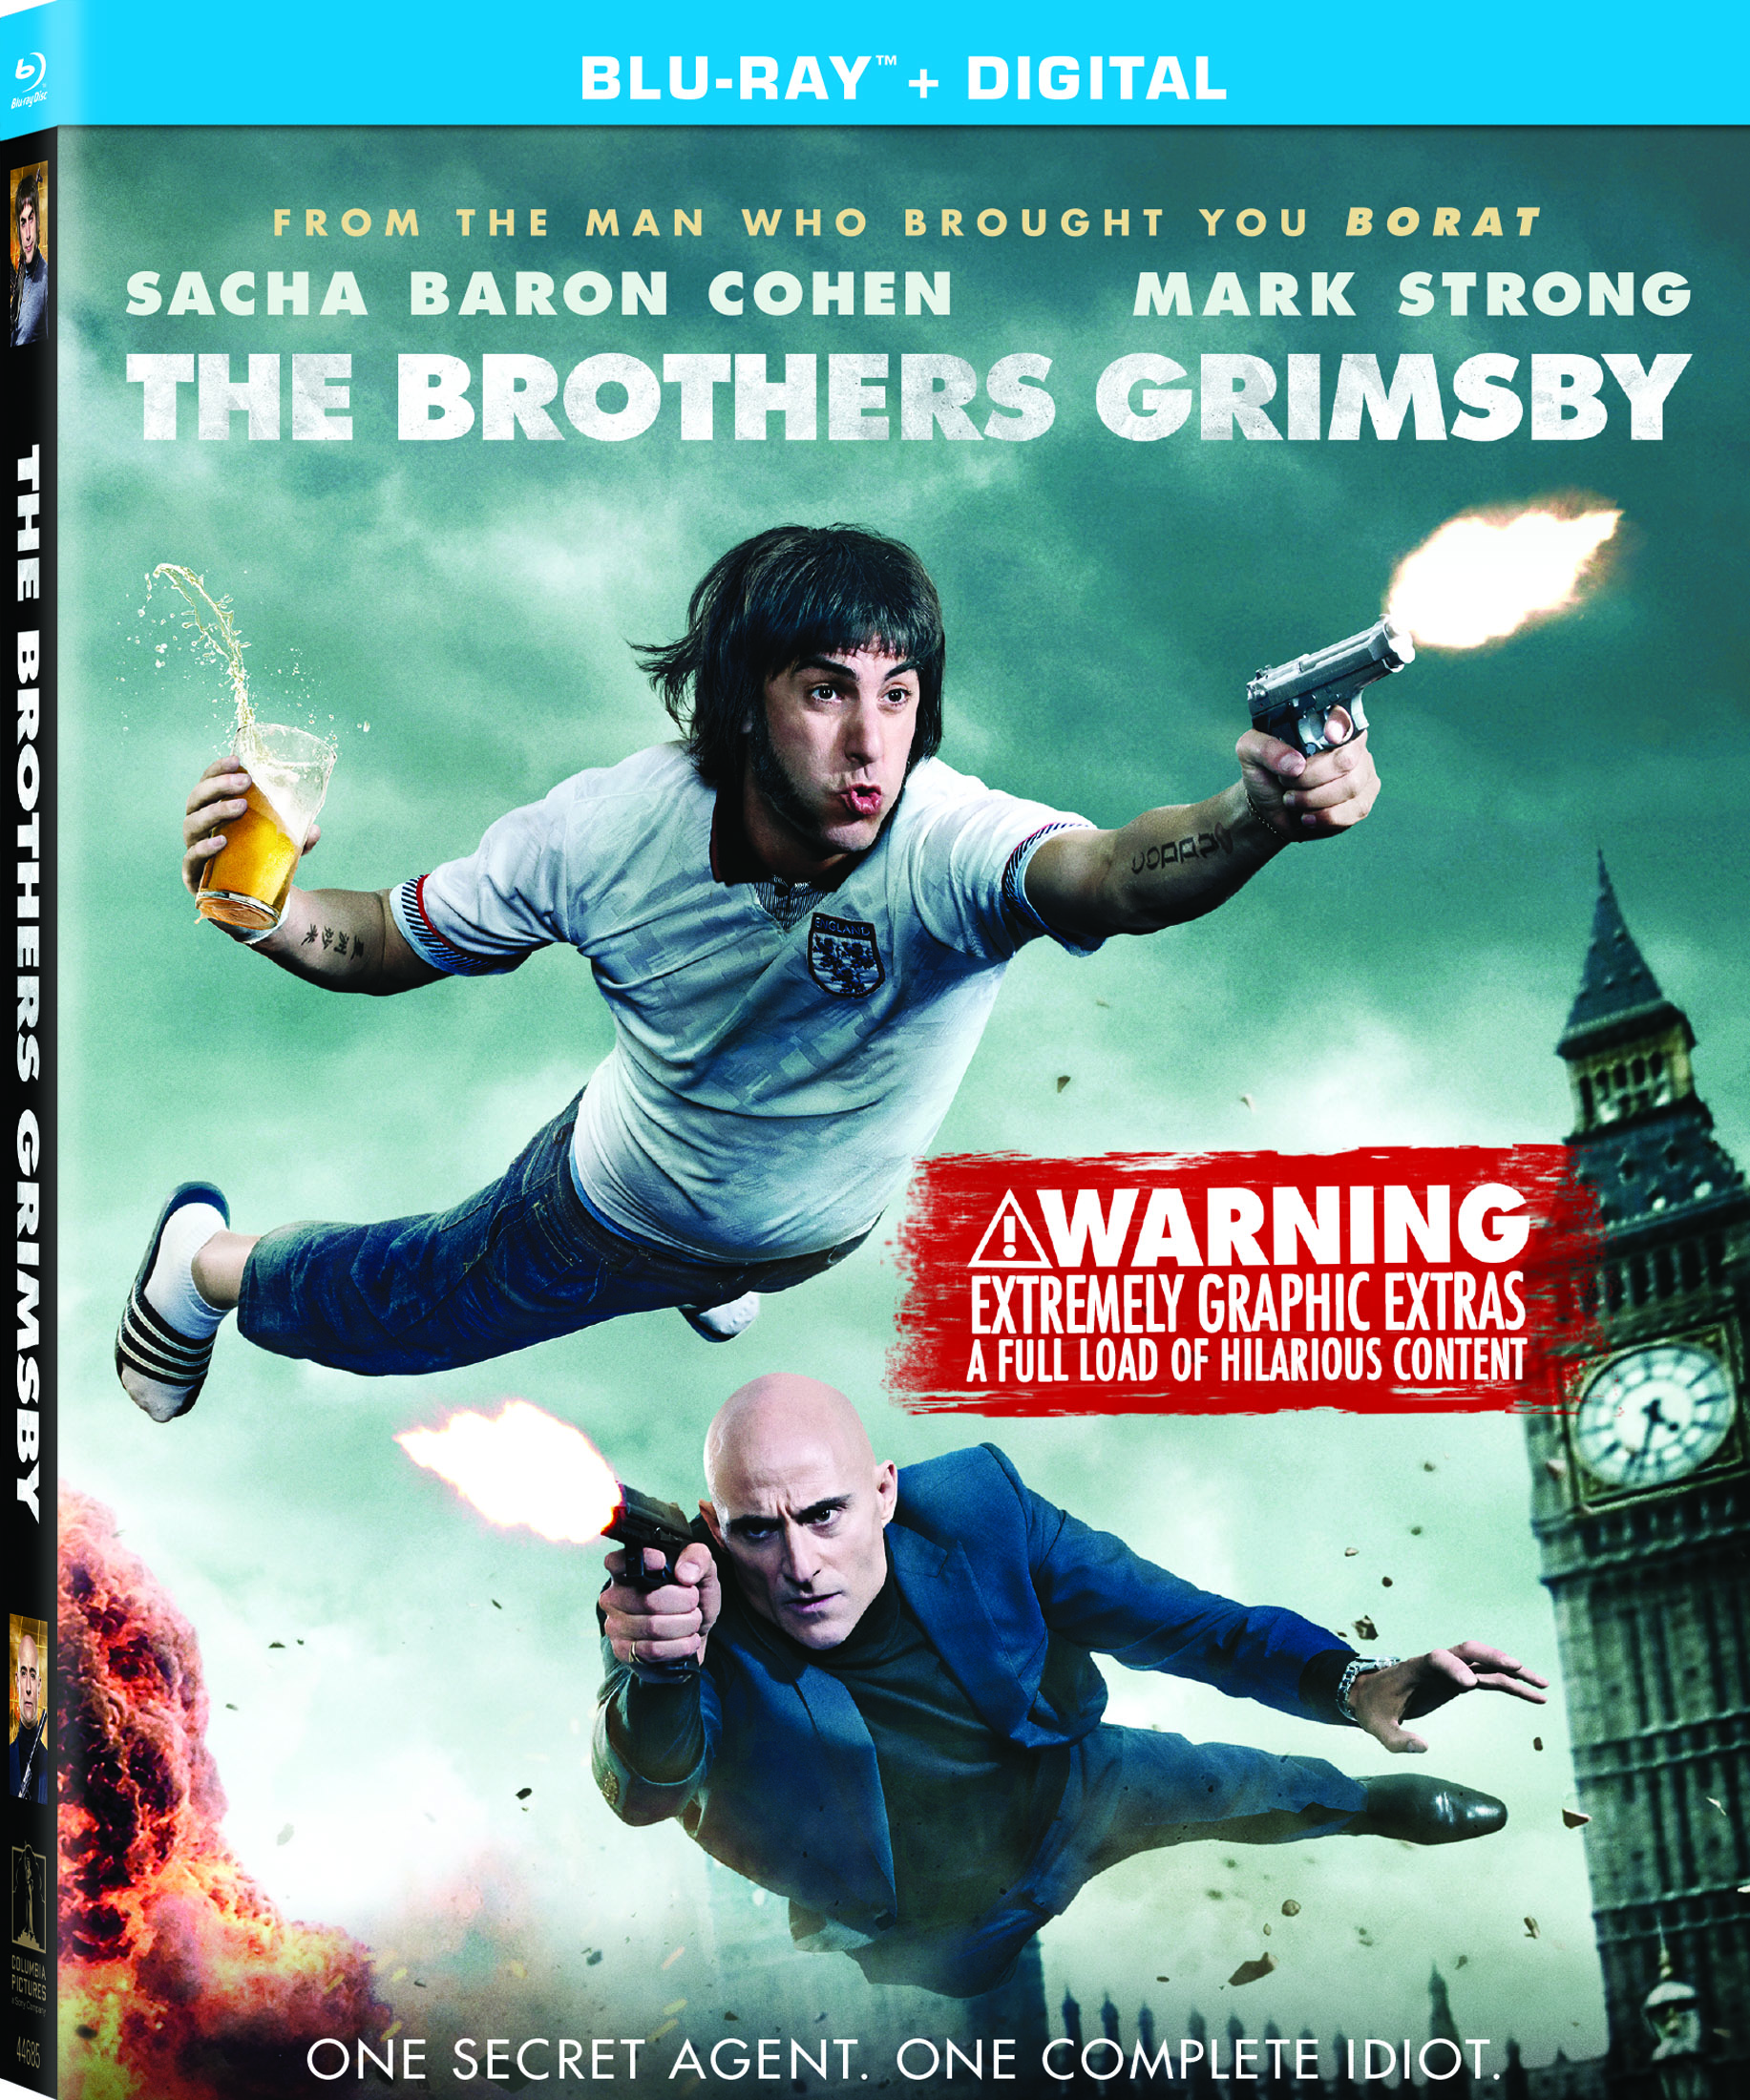 The Brothers Grimsby Blu-ray Review